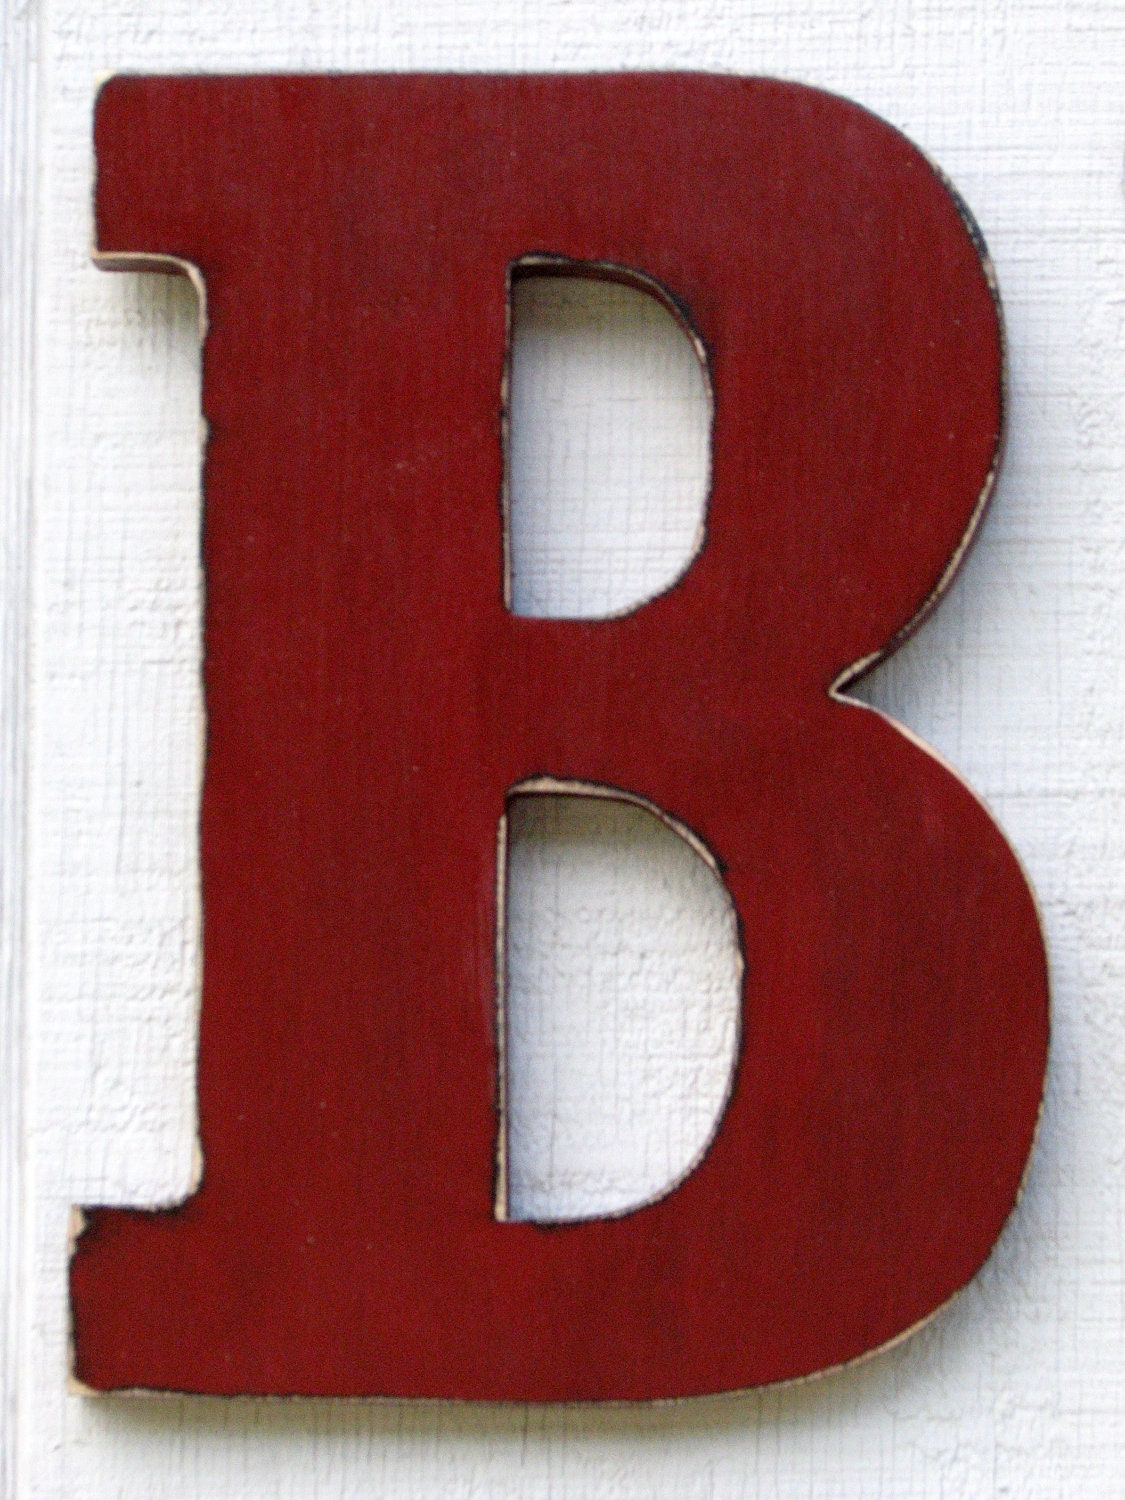 Kids room large wooden letter b 12 inch tall by for Big wooden letter b